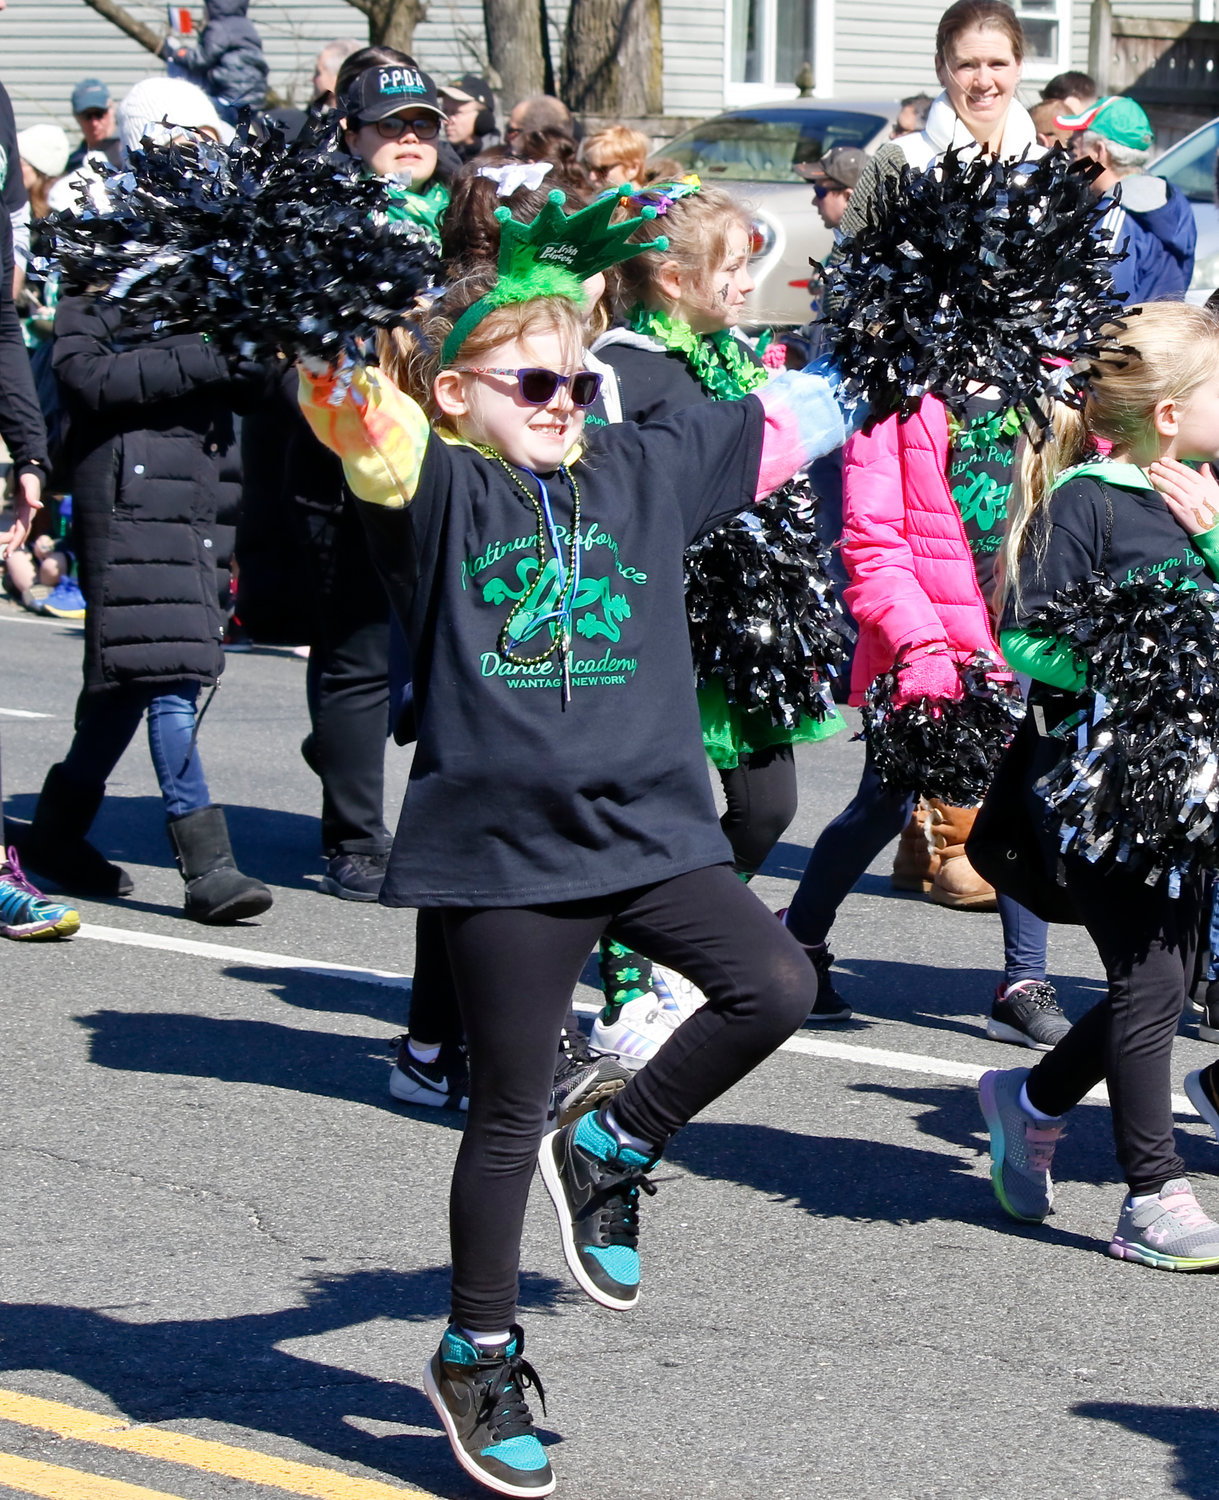 Dancer Megan Kelly, from Platinum Performance Dance Academy in Wantagh, spread St. Patrick's Day cheer along the route.